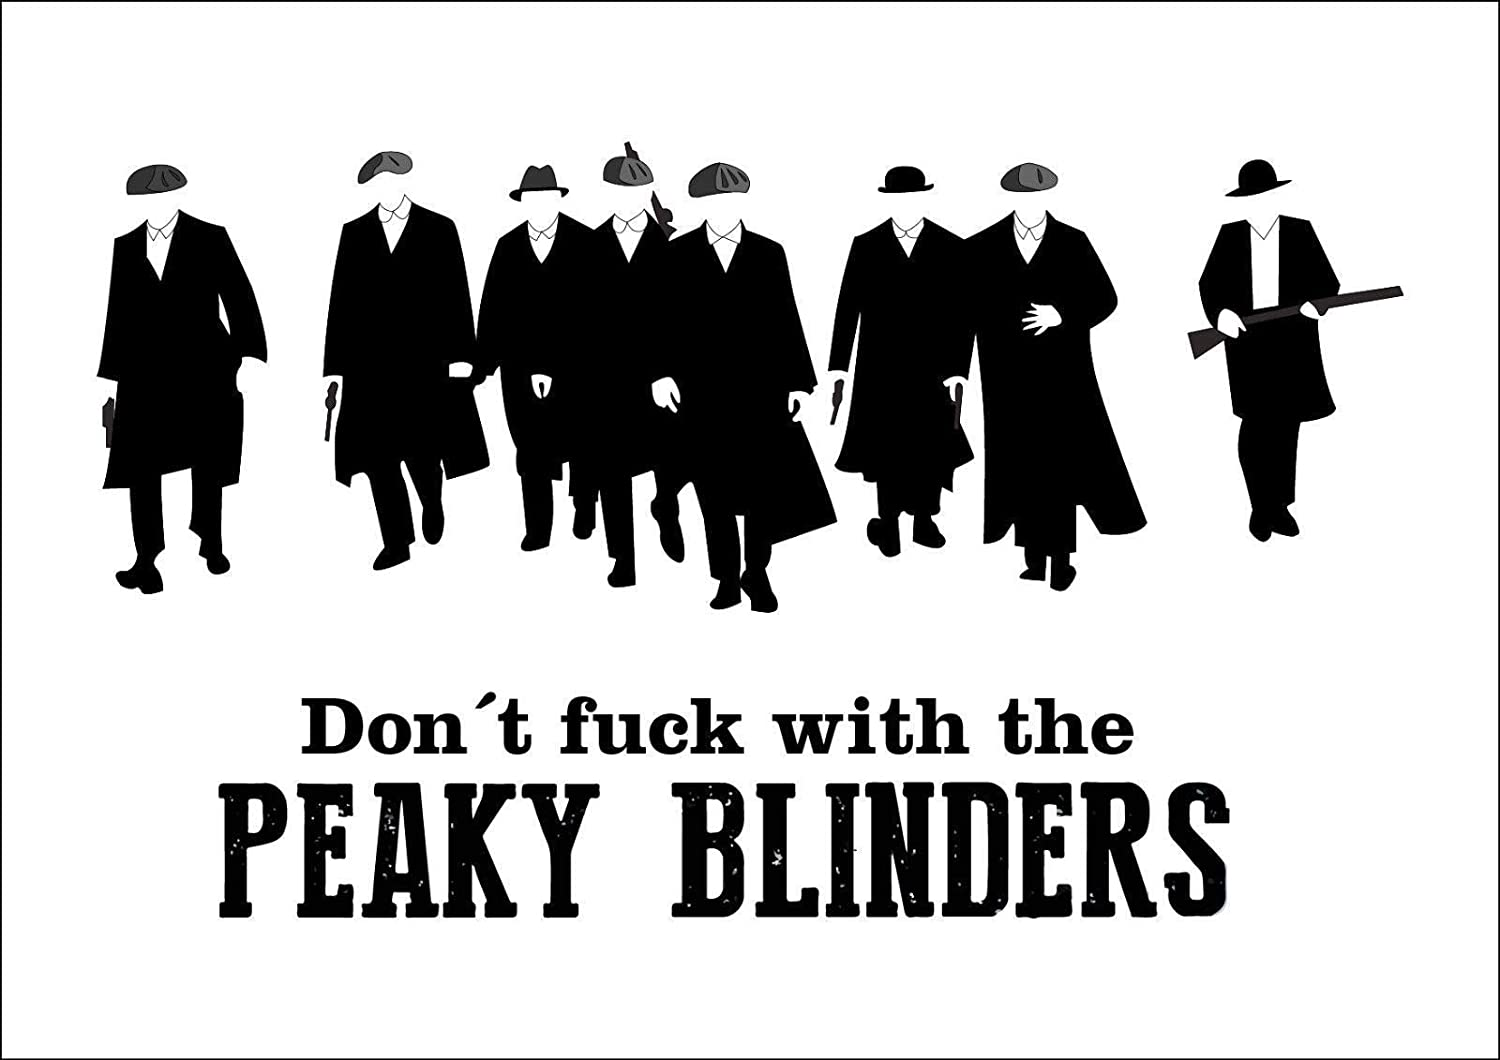 HALEY GAINES Peaky Blinders Placa Cartel Póster de Pared ...